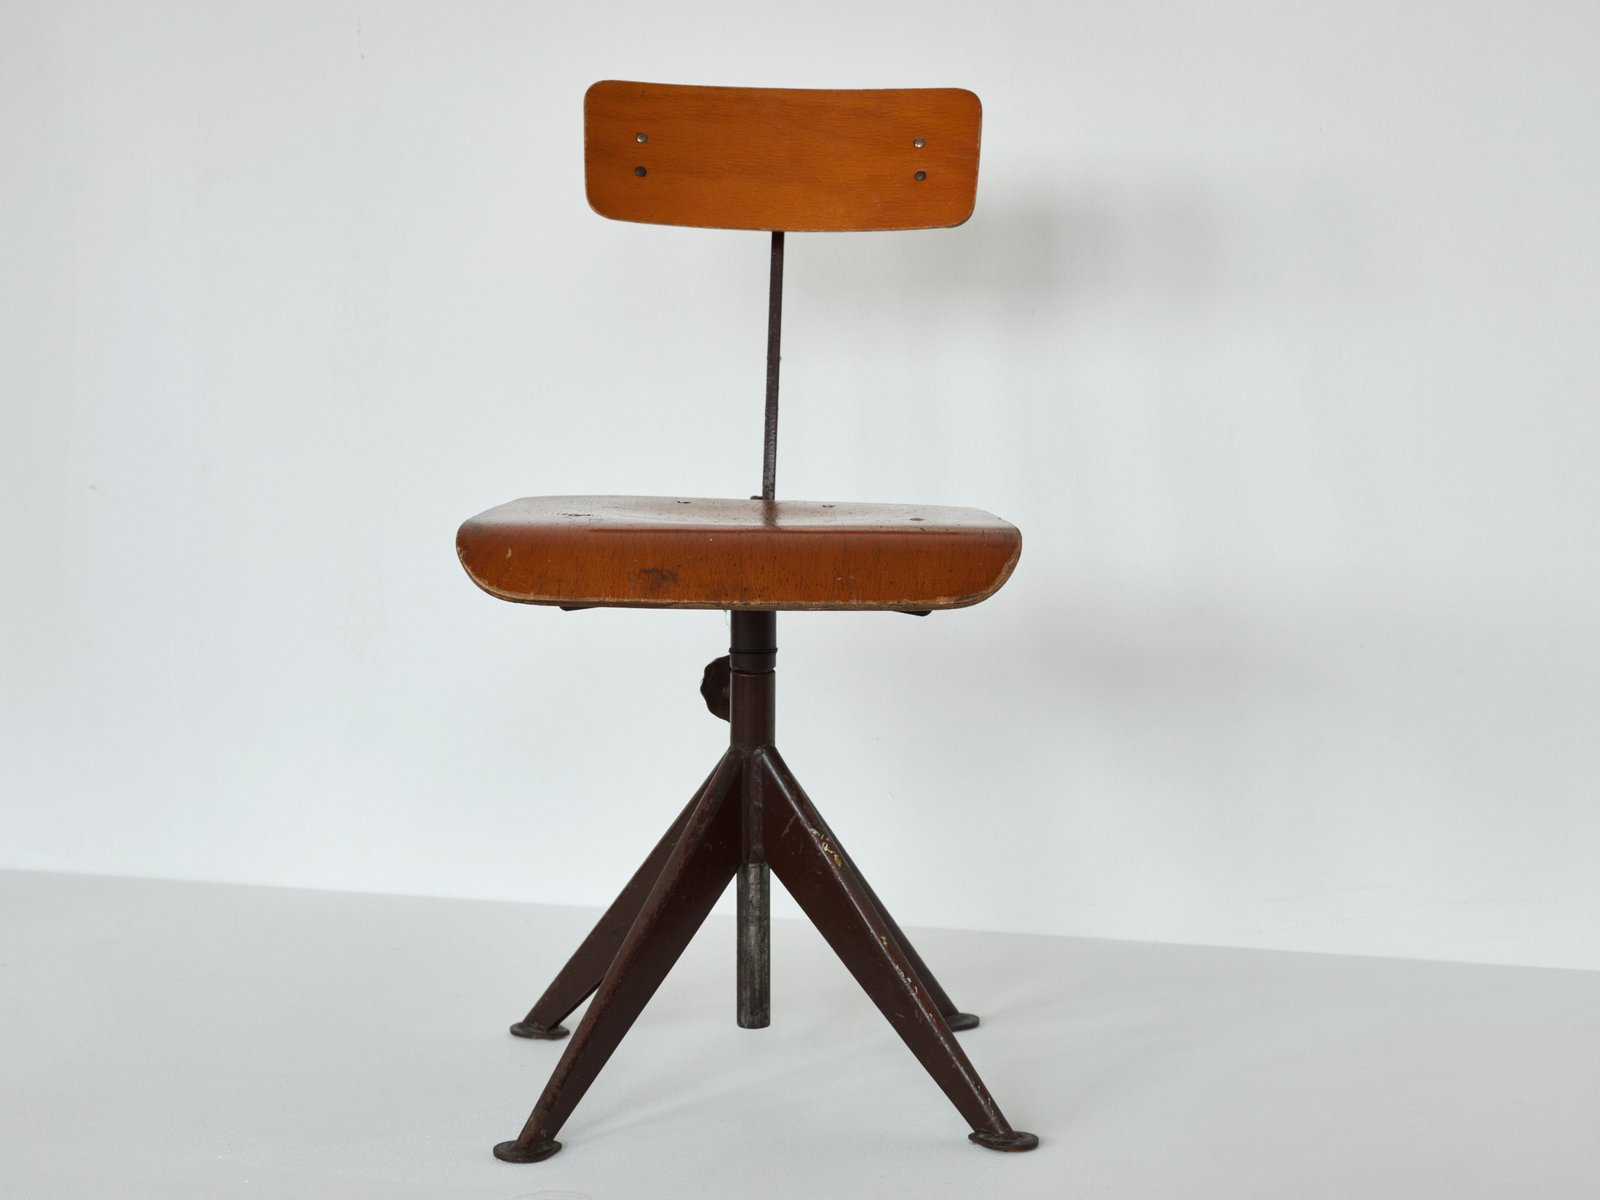 Vintage swivel work chair by jean prouve for sale at pamono - Table basse jean prouve ...